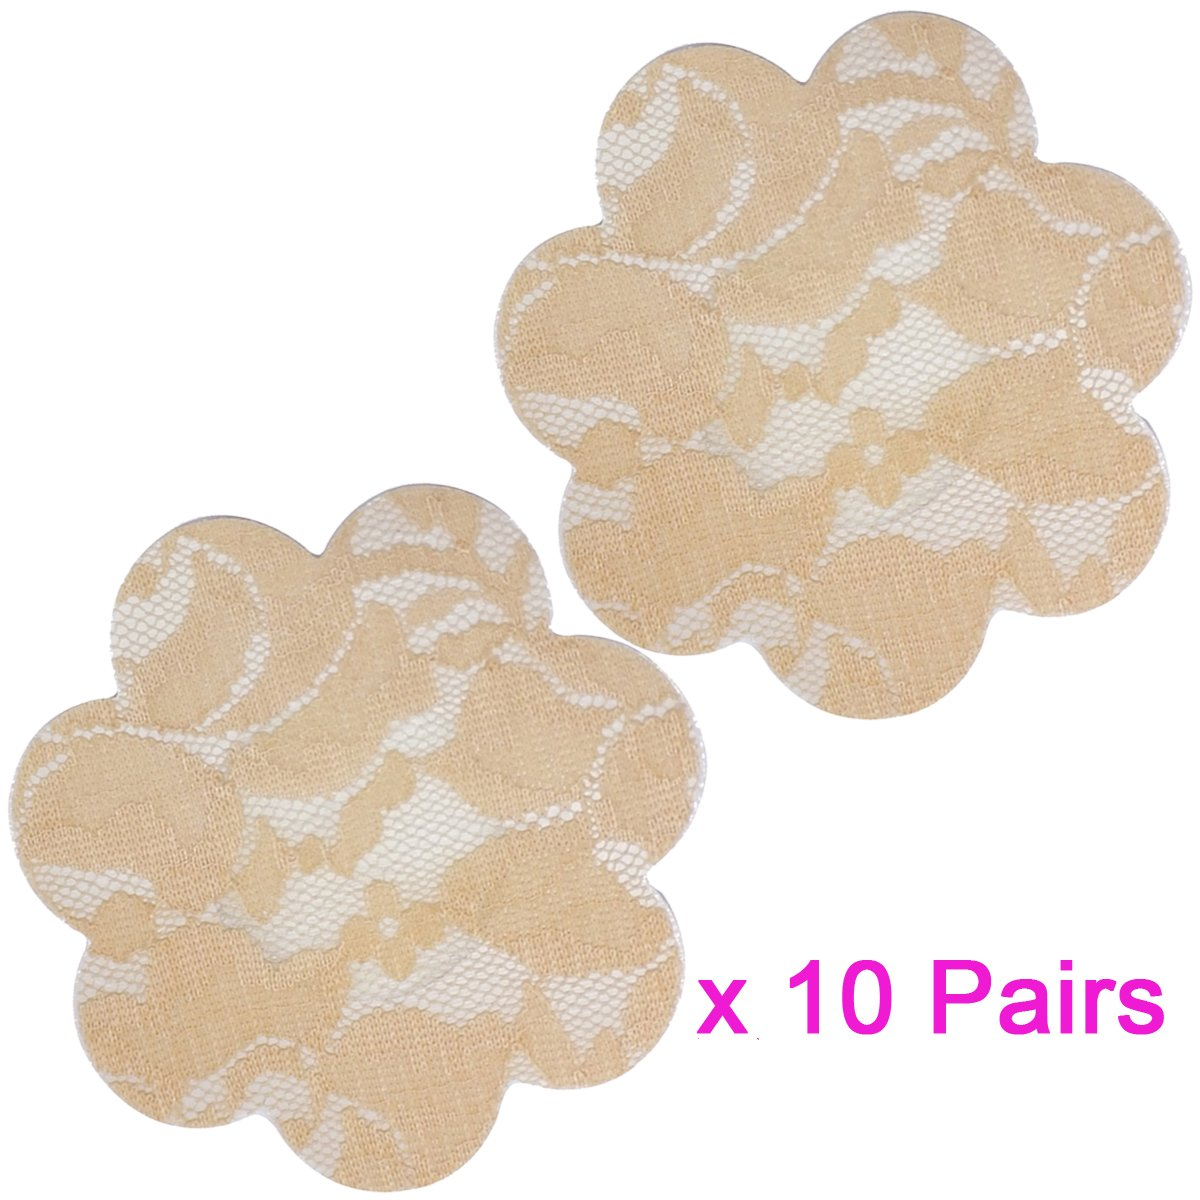 091045a307b1a 10 Pairs Sexy Lace Adhesive Nipple Cover Pasties Bra Halloween   Christmas  Style (Beige Flower) at Amazon Women s Clothing store